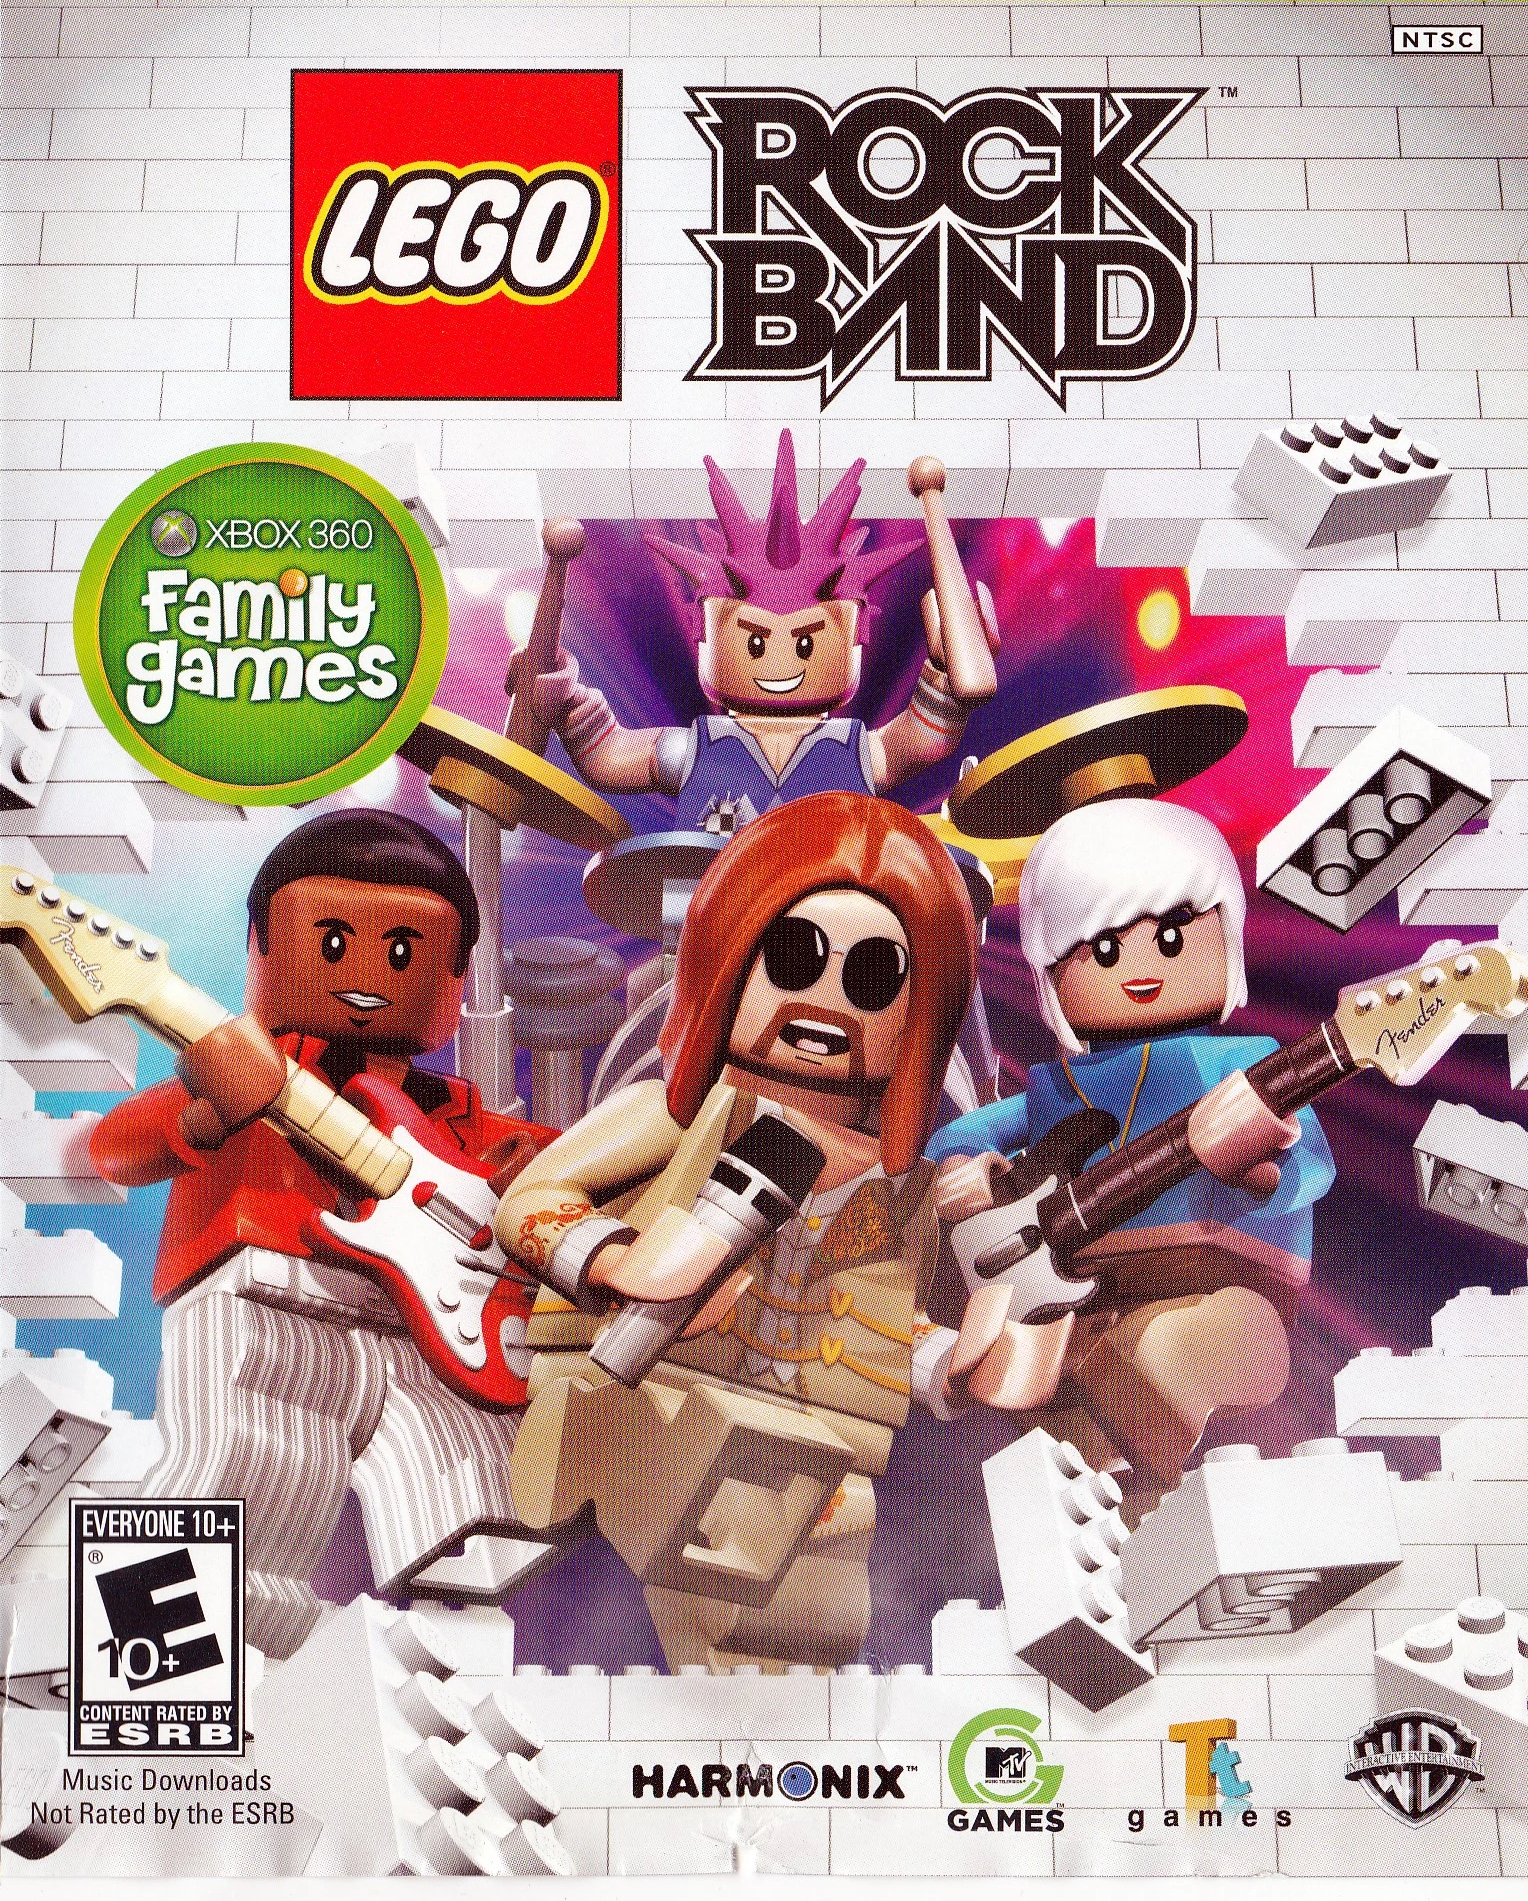 Lego rock band box art.jpg